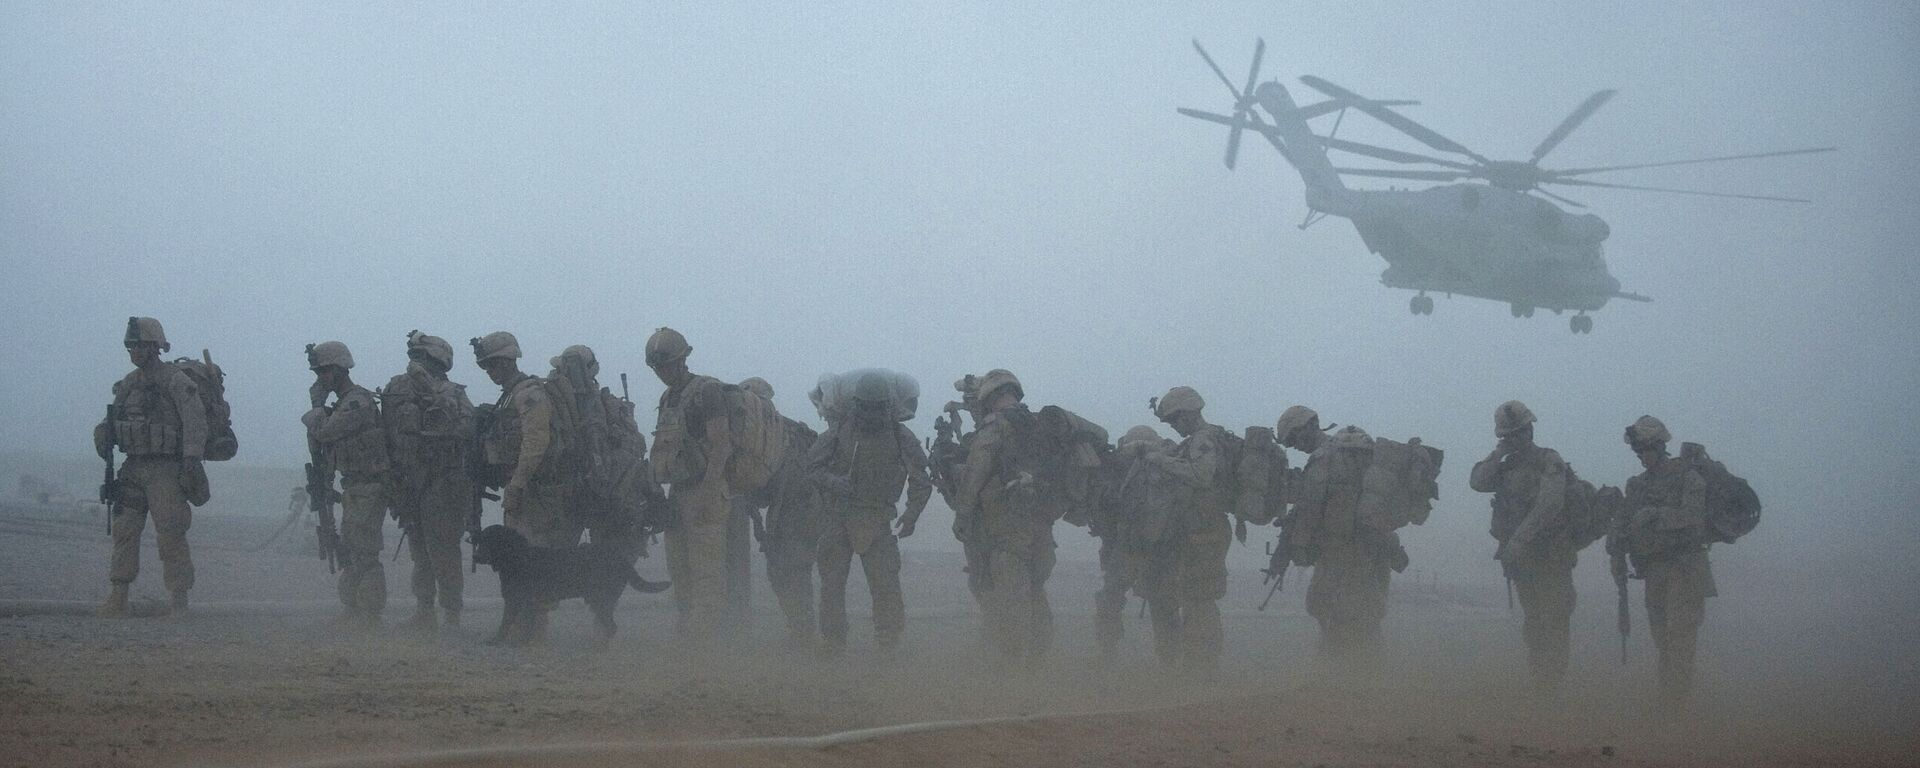 In this file photo US Marines from the 2nd Battalion, 8th Marine Regiment of the 2nd Marine Expeditionary Brigade wait for helicopter transport as part of Operation Khanjar at Camp Dwyer in Helmand Province in Afghanistan on July 2, 2009. - Sputnik International, 1920